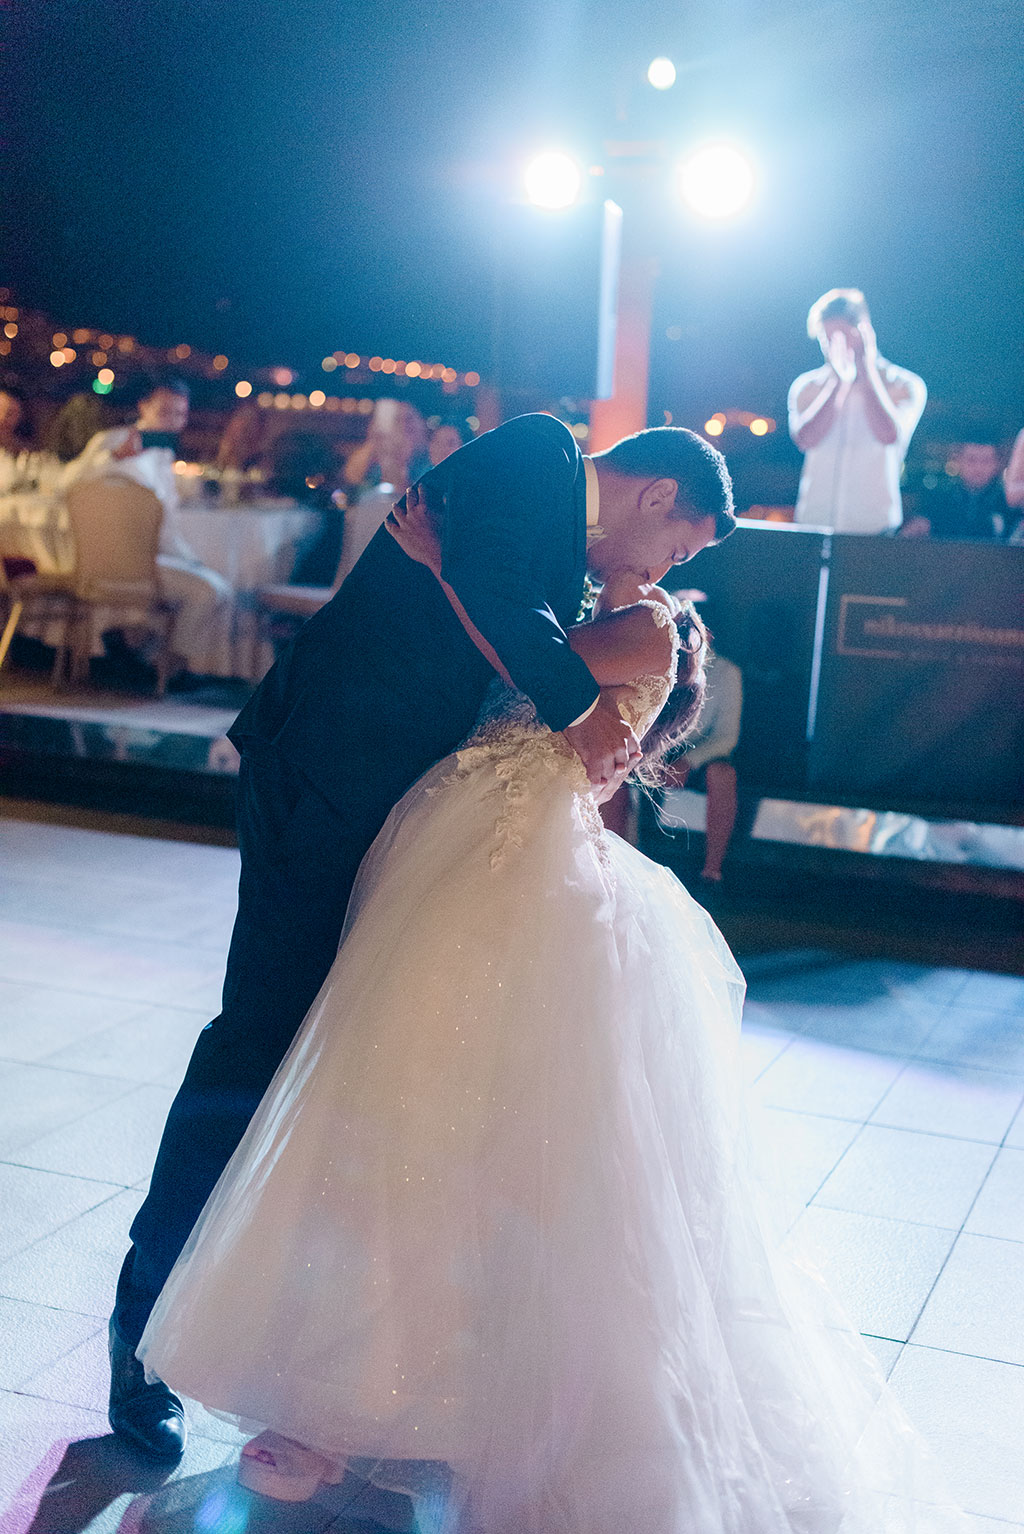 A groom's kiss for the bride during the first dance